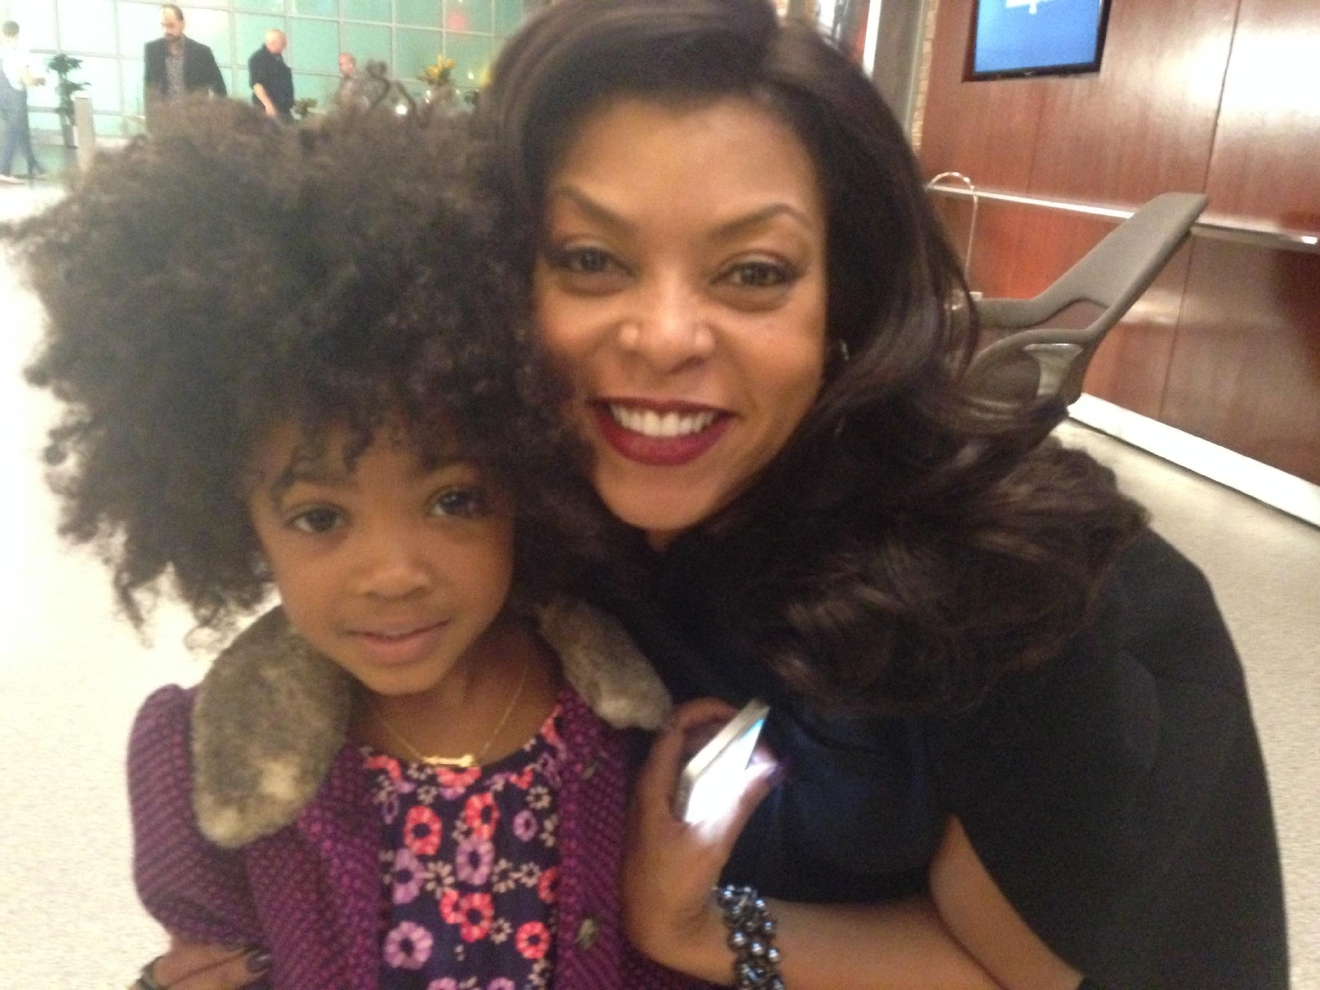 Leah Jeffires with Taraji P. Henson who plays Cookie Lyon on Empire.